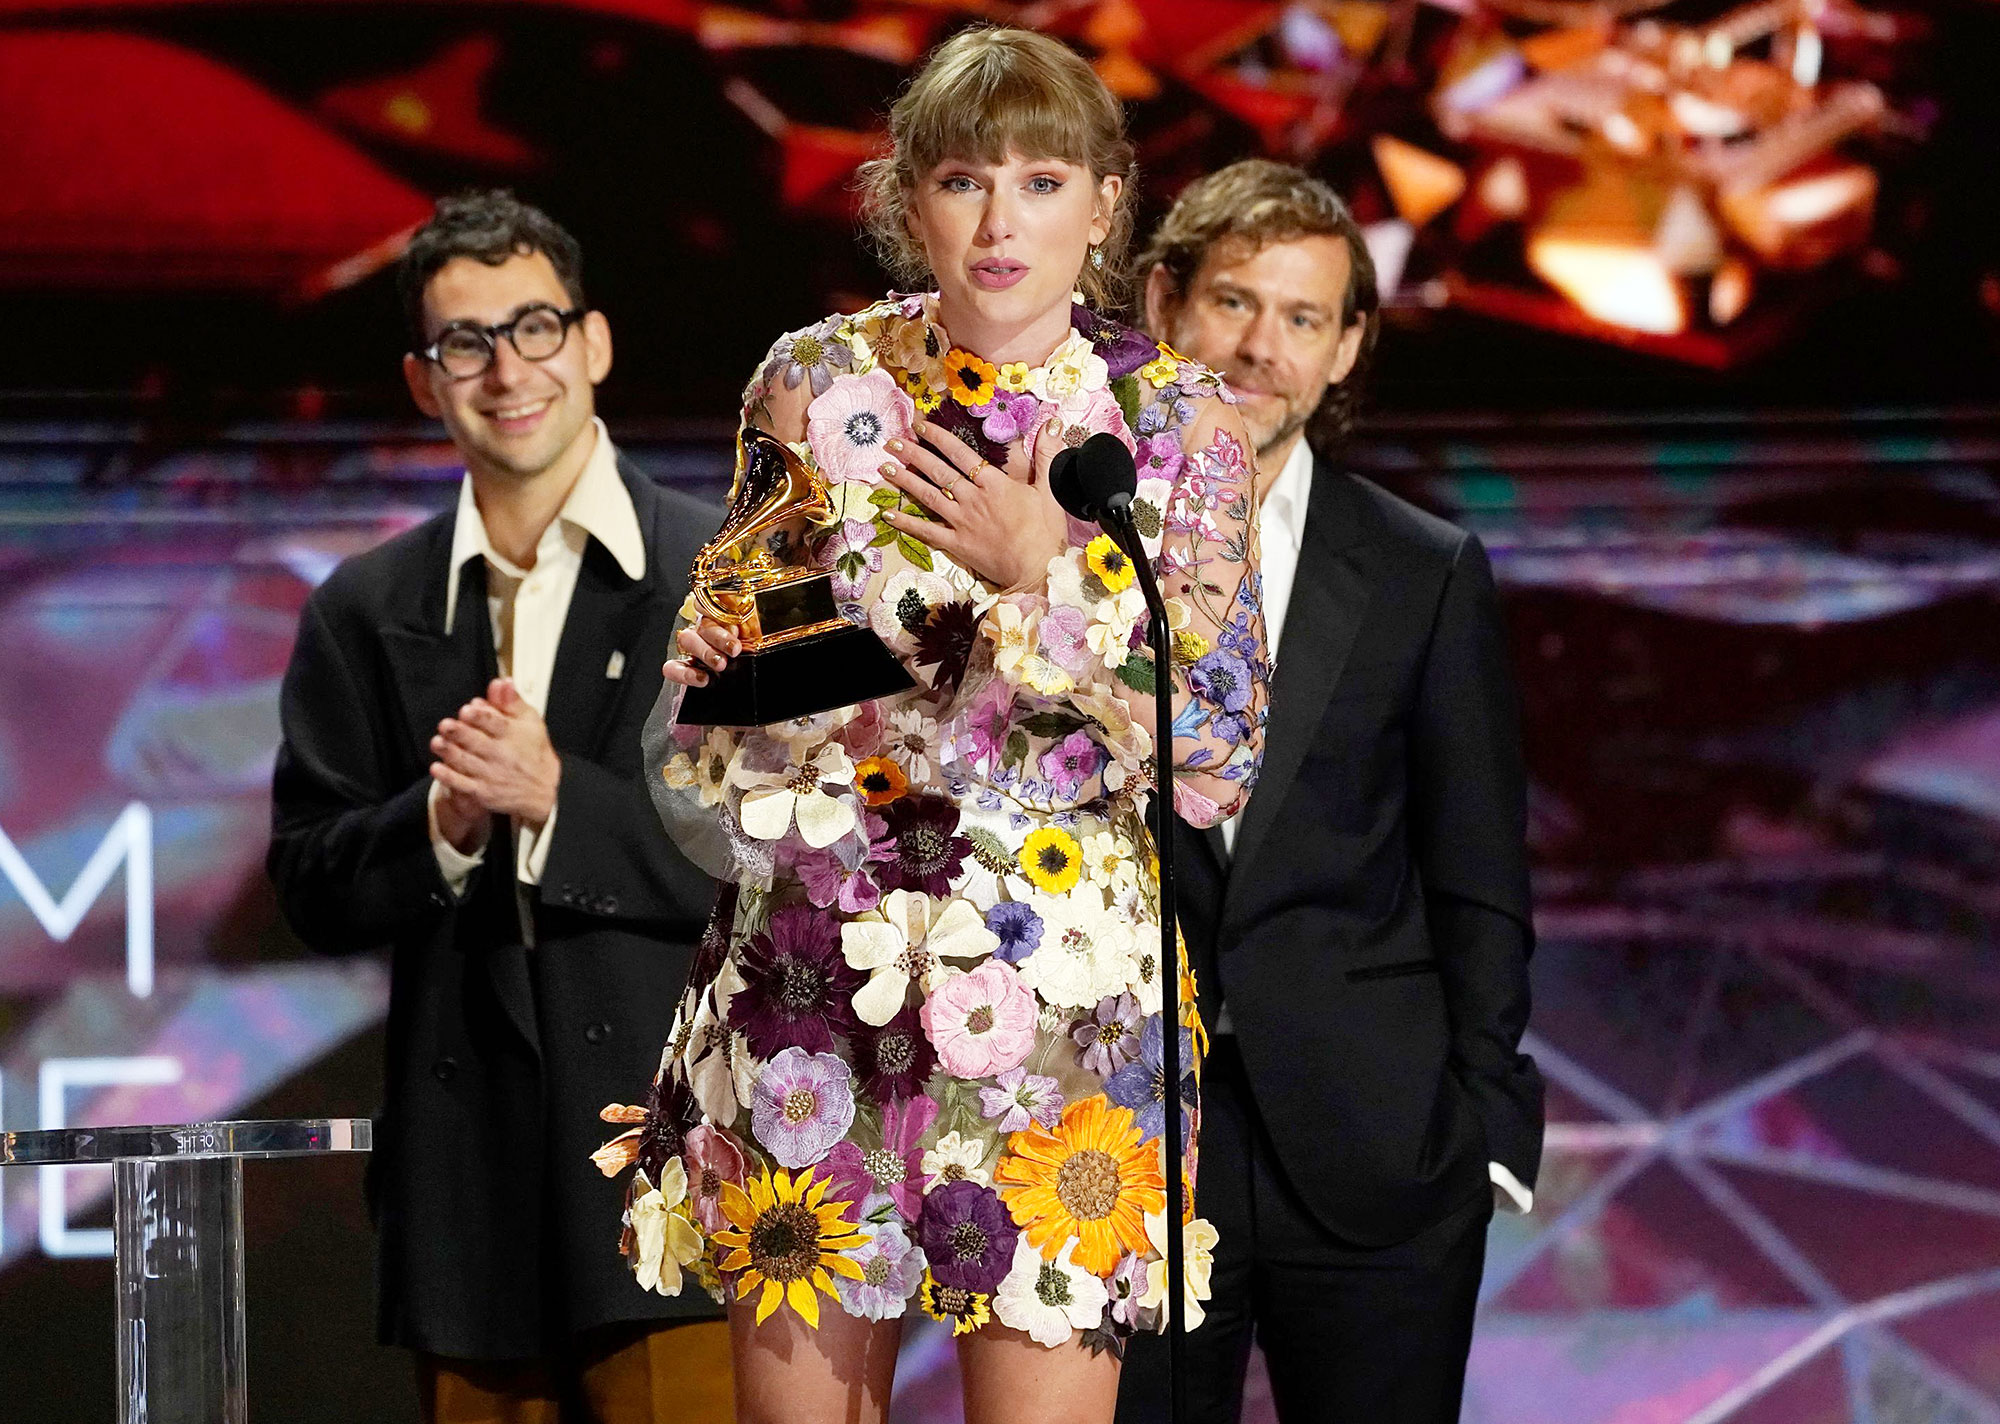 Taylor Swift Wins Album of the Year at Grammys 2021